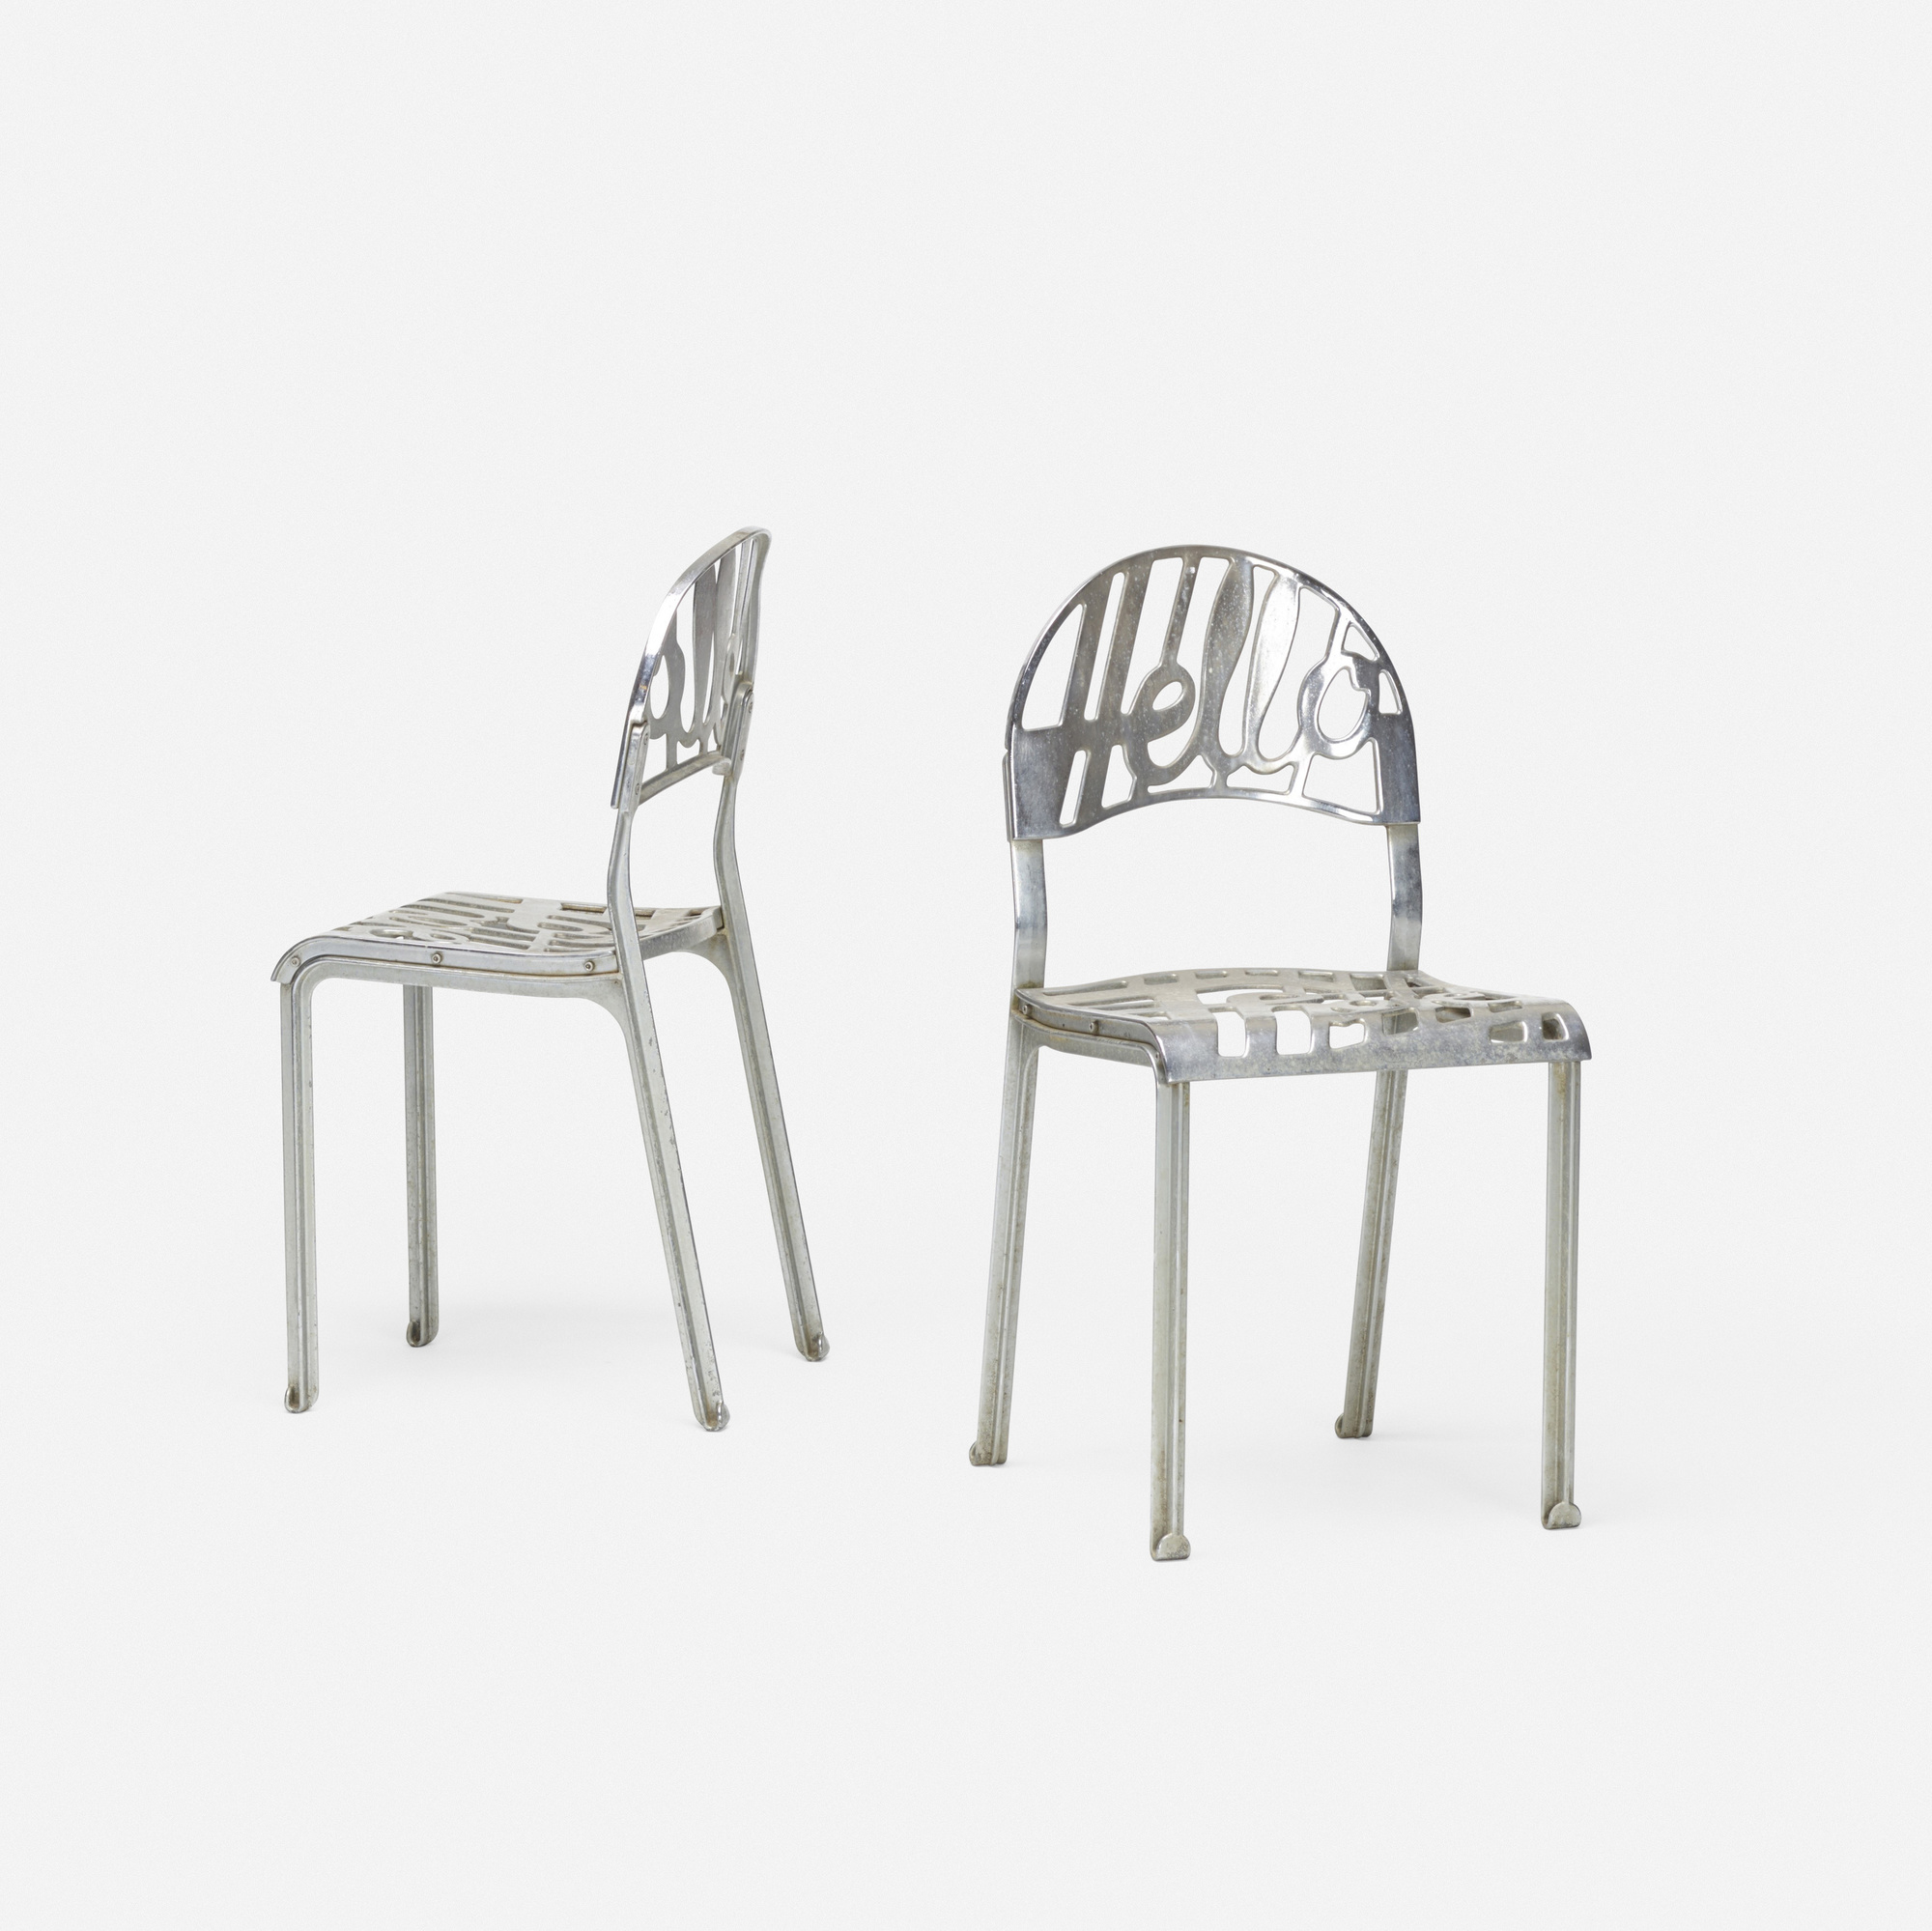 371: Jeremy Harvey / Hello There chairs, pair (2 of 2)